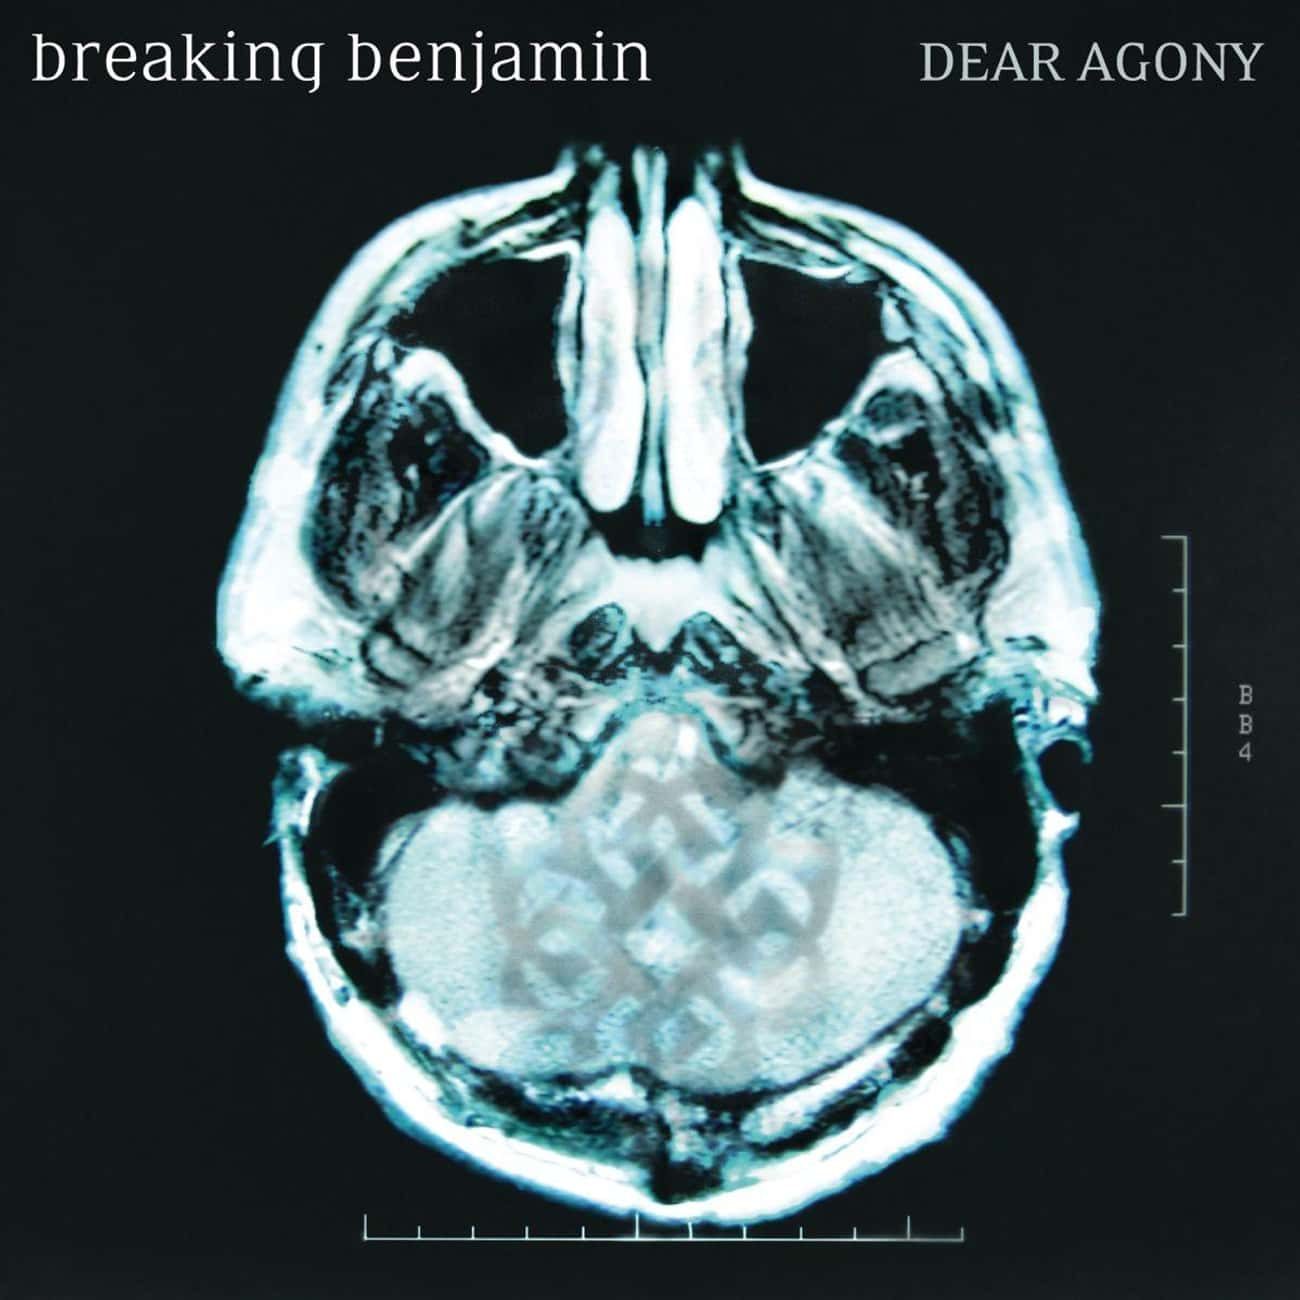 Dear Agony is listed (or ranked) 3 on the list The Best Breaking Benjamin Albums of All Time